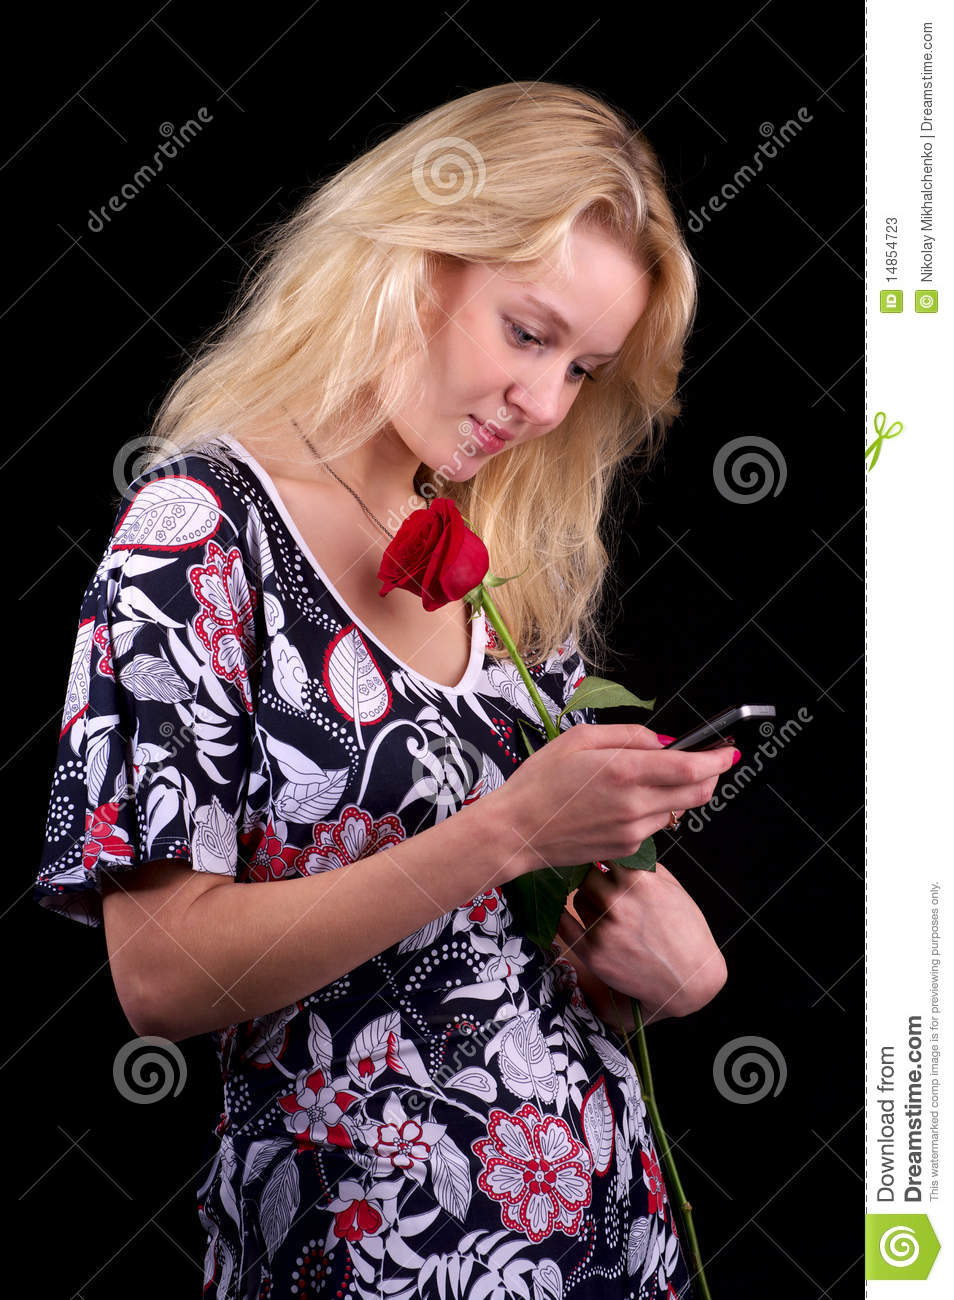 Young blond woman texting